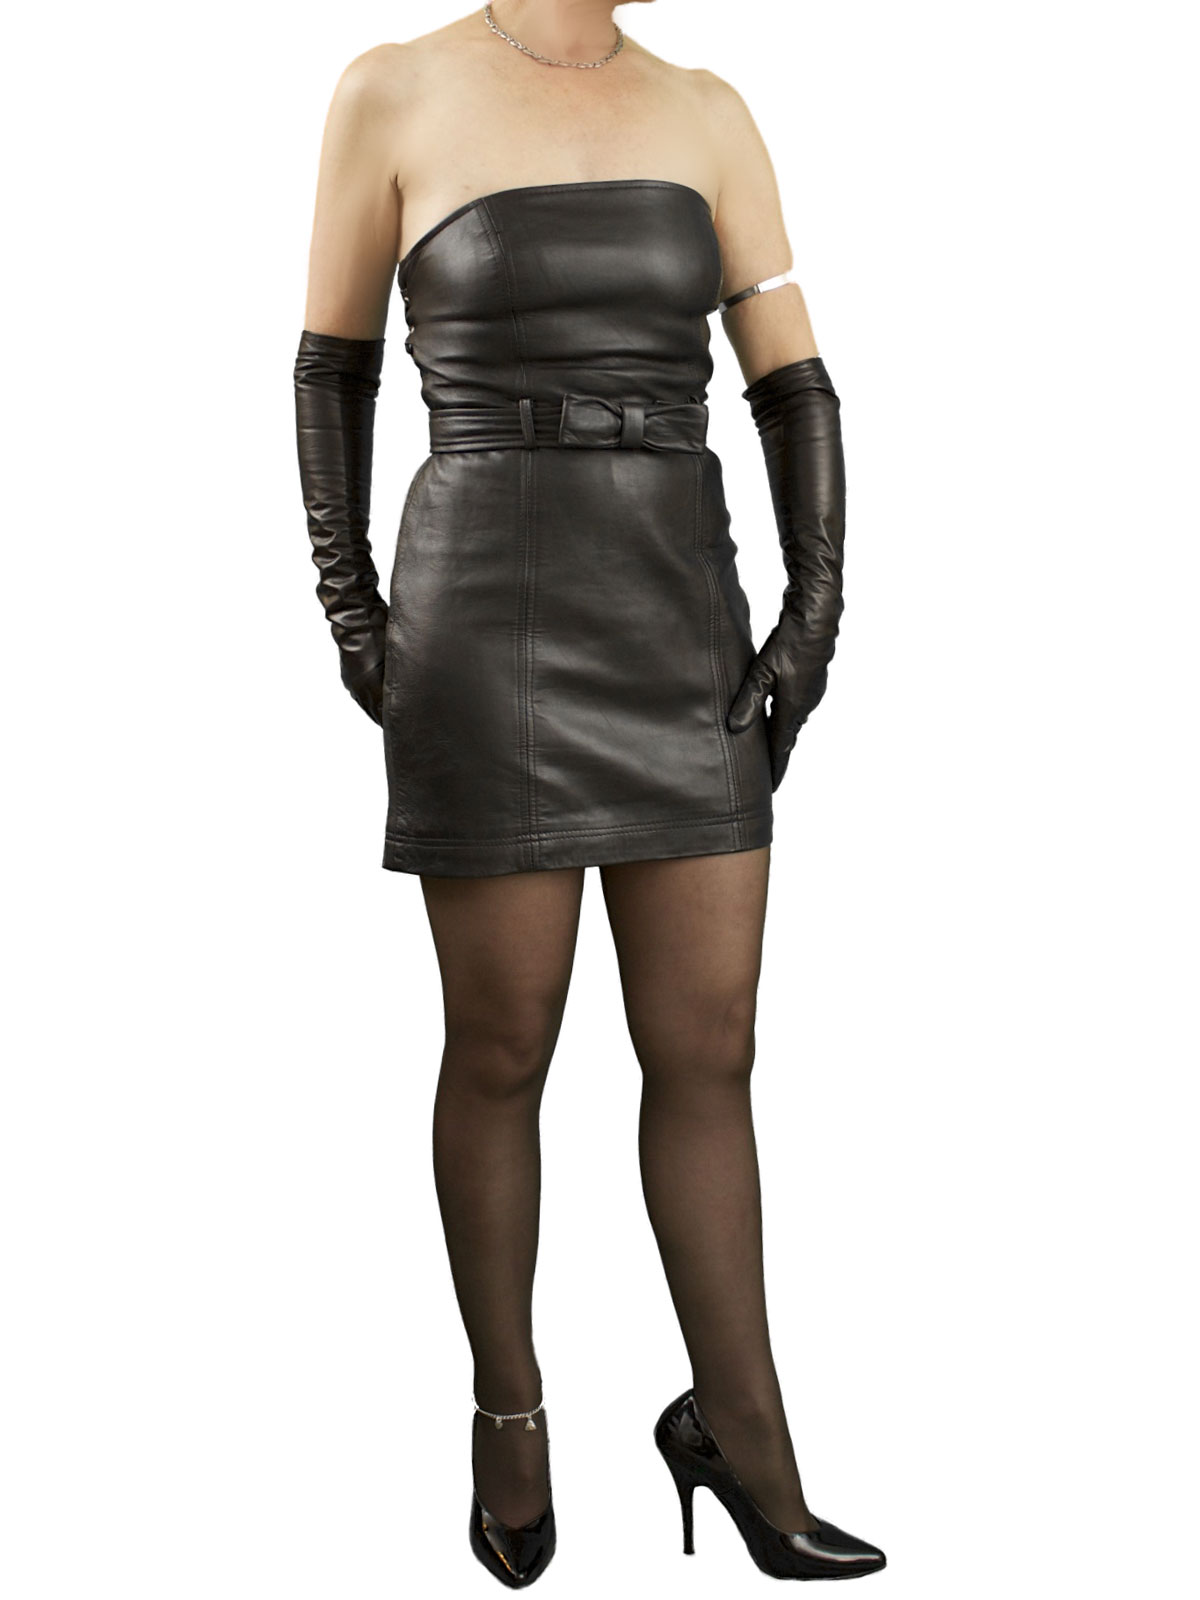 Find great deals on eBay for black leather dress. Shop with confidence.